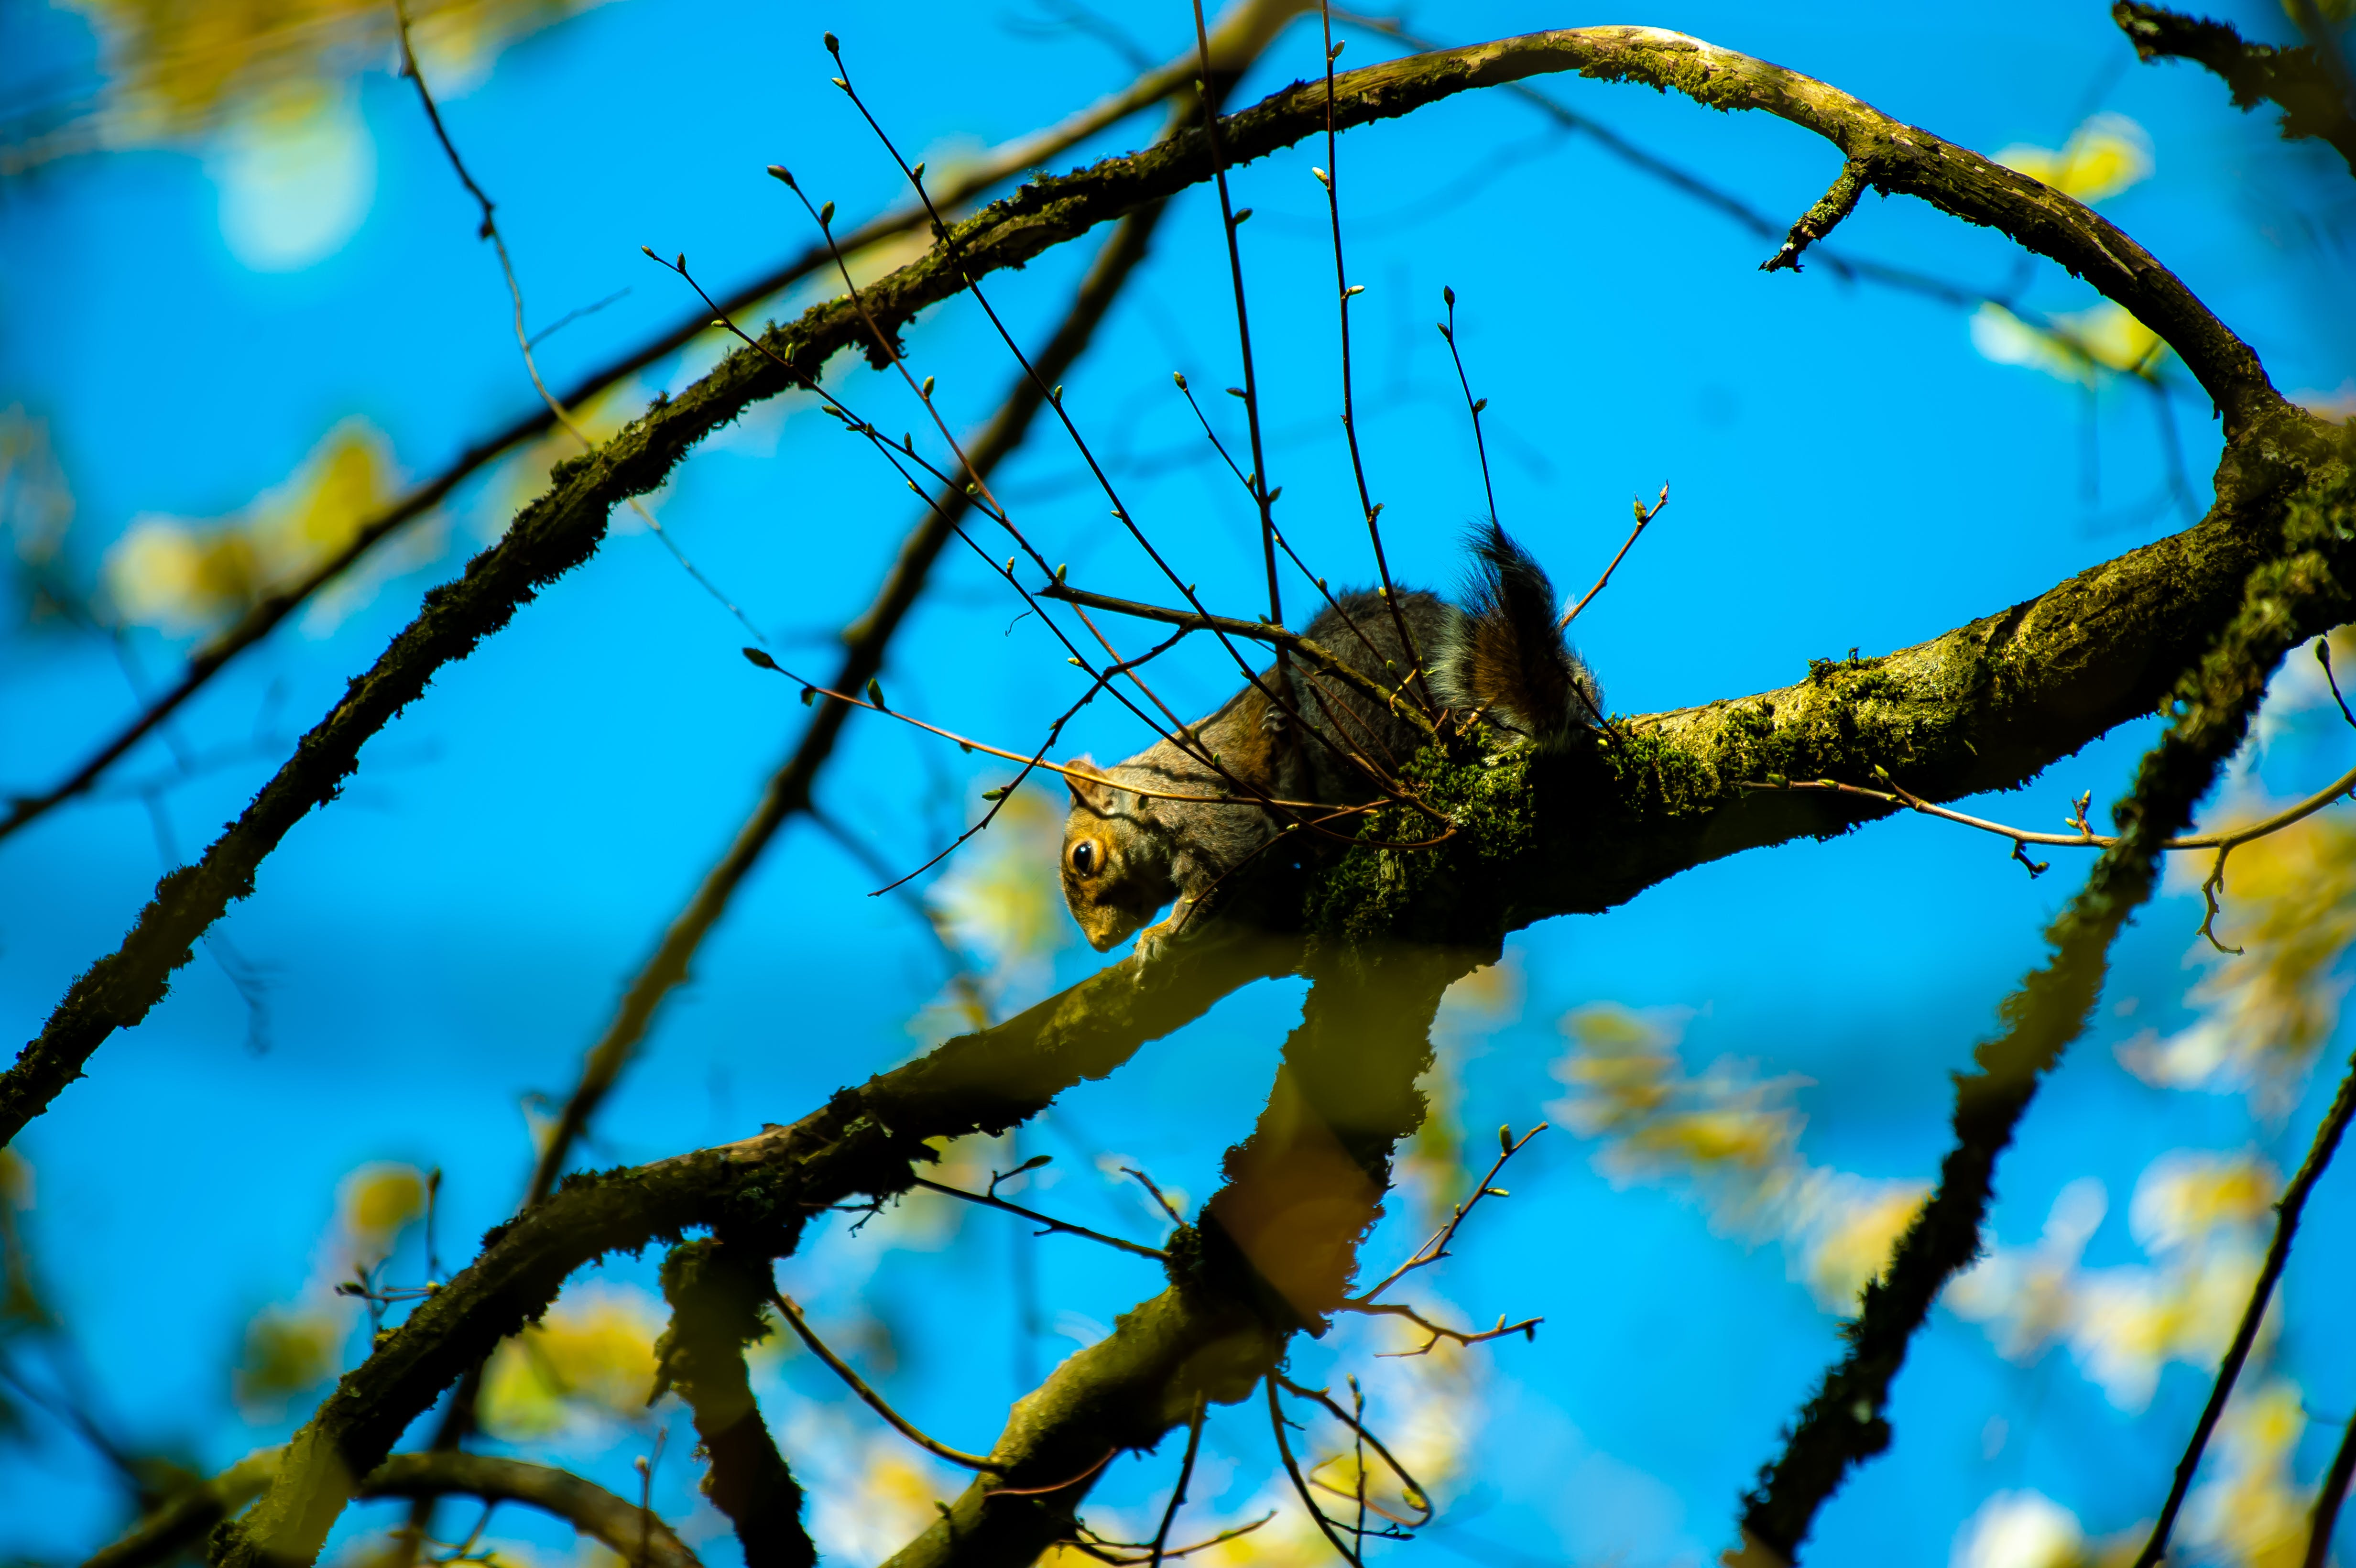 Brown and Gray Squirrel on Brown Tree Branch